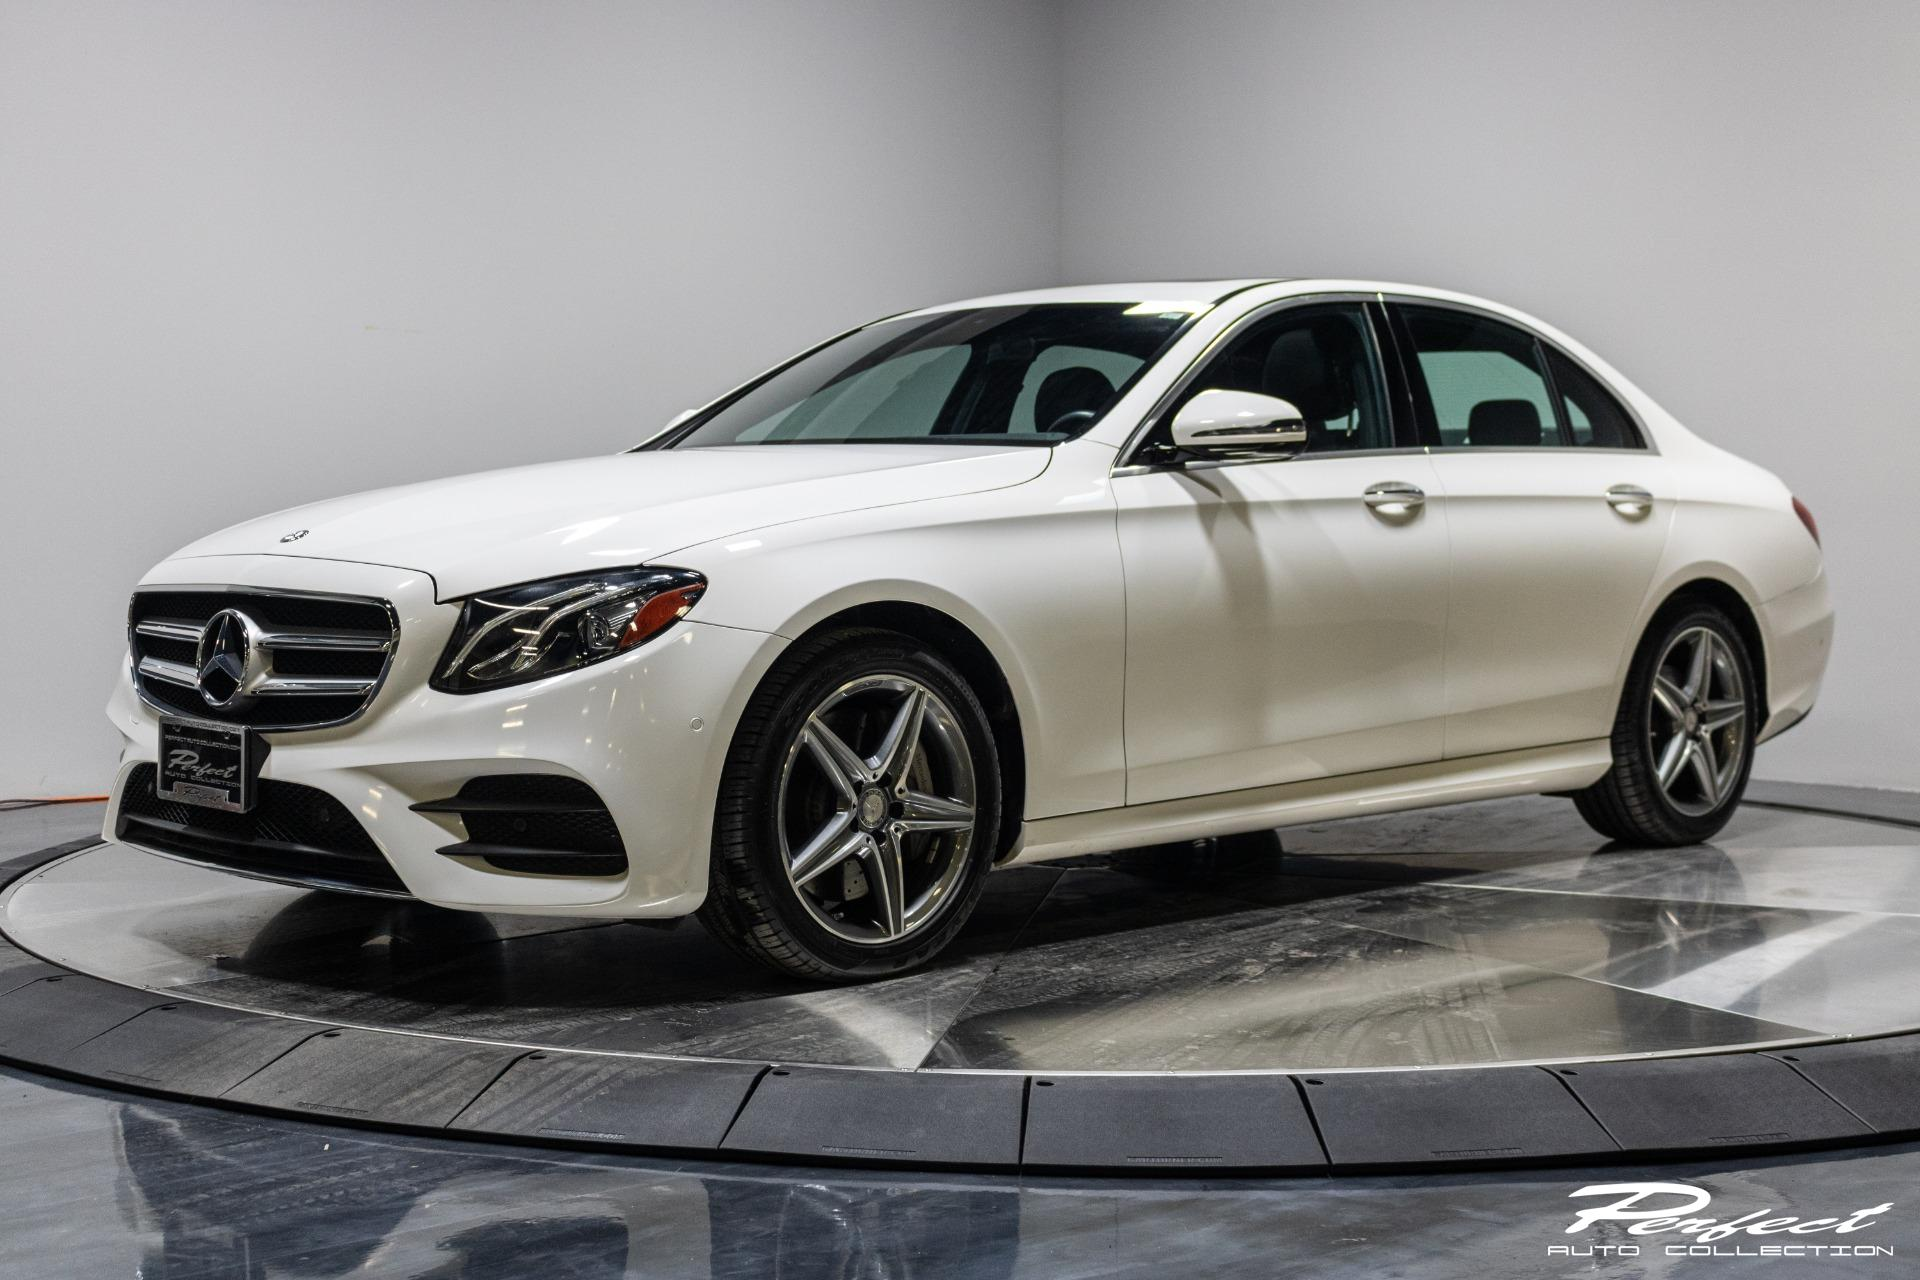 Used 2017 Mercedes-Benz E-Class E 300 4MATIC for sale Sold at Perfect Auto Collection in Akron OH 44310 1